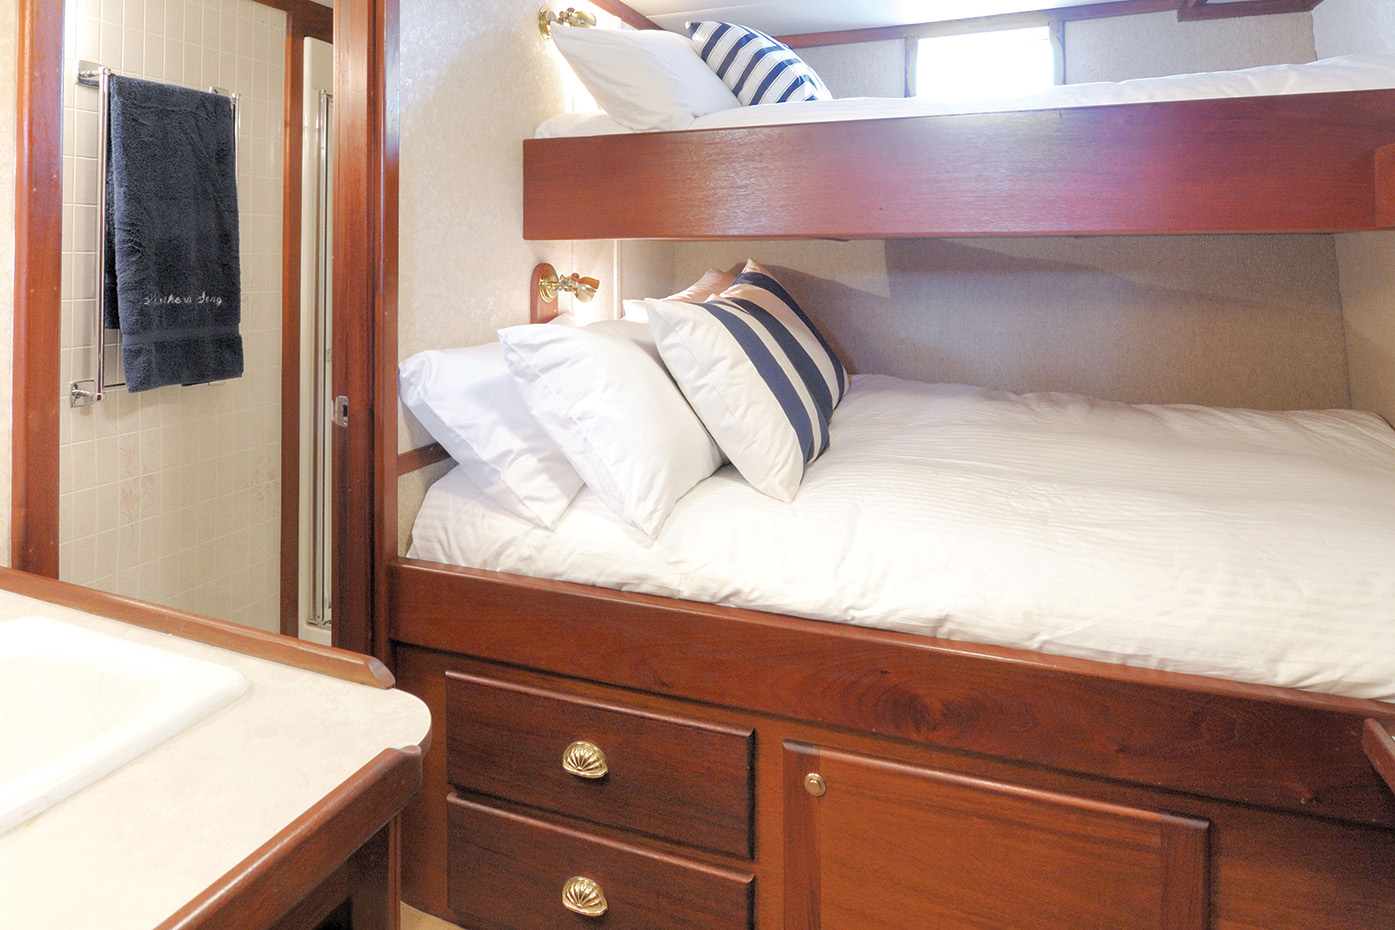 Lower Deck Stateroom - Upper/Lower Berths